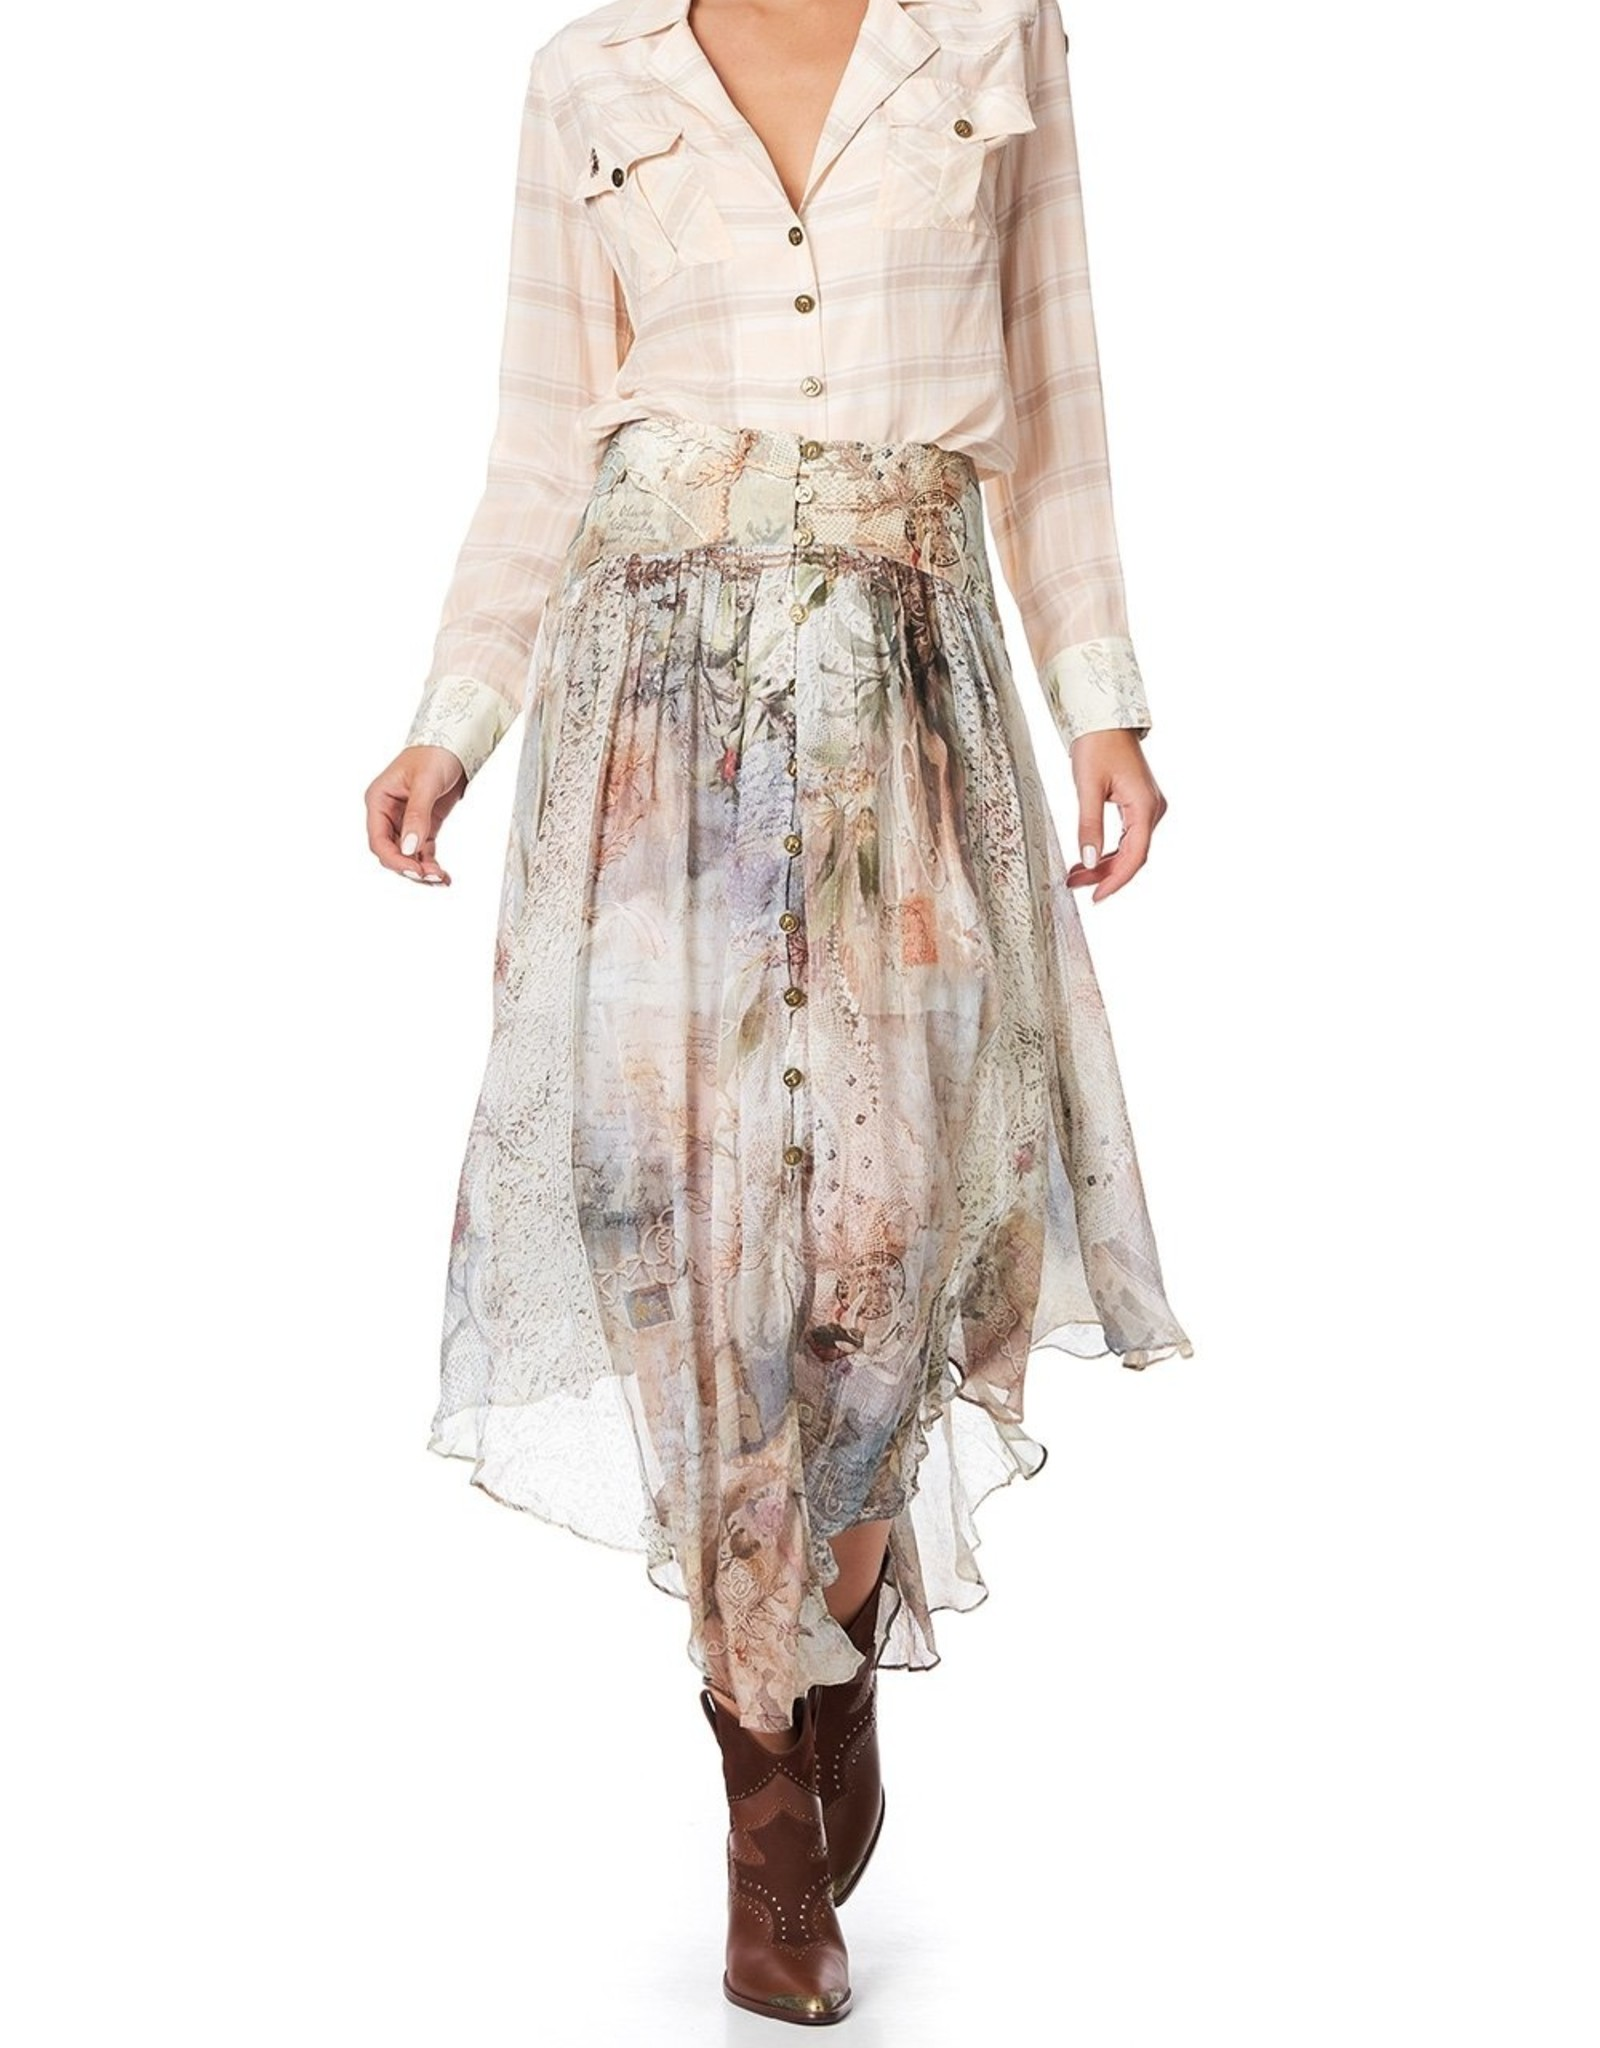 CAMILLA LETTERS FROM HILDA SHAPED WAIST SKIRT